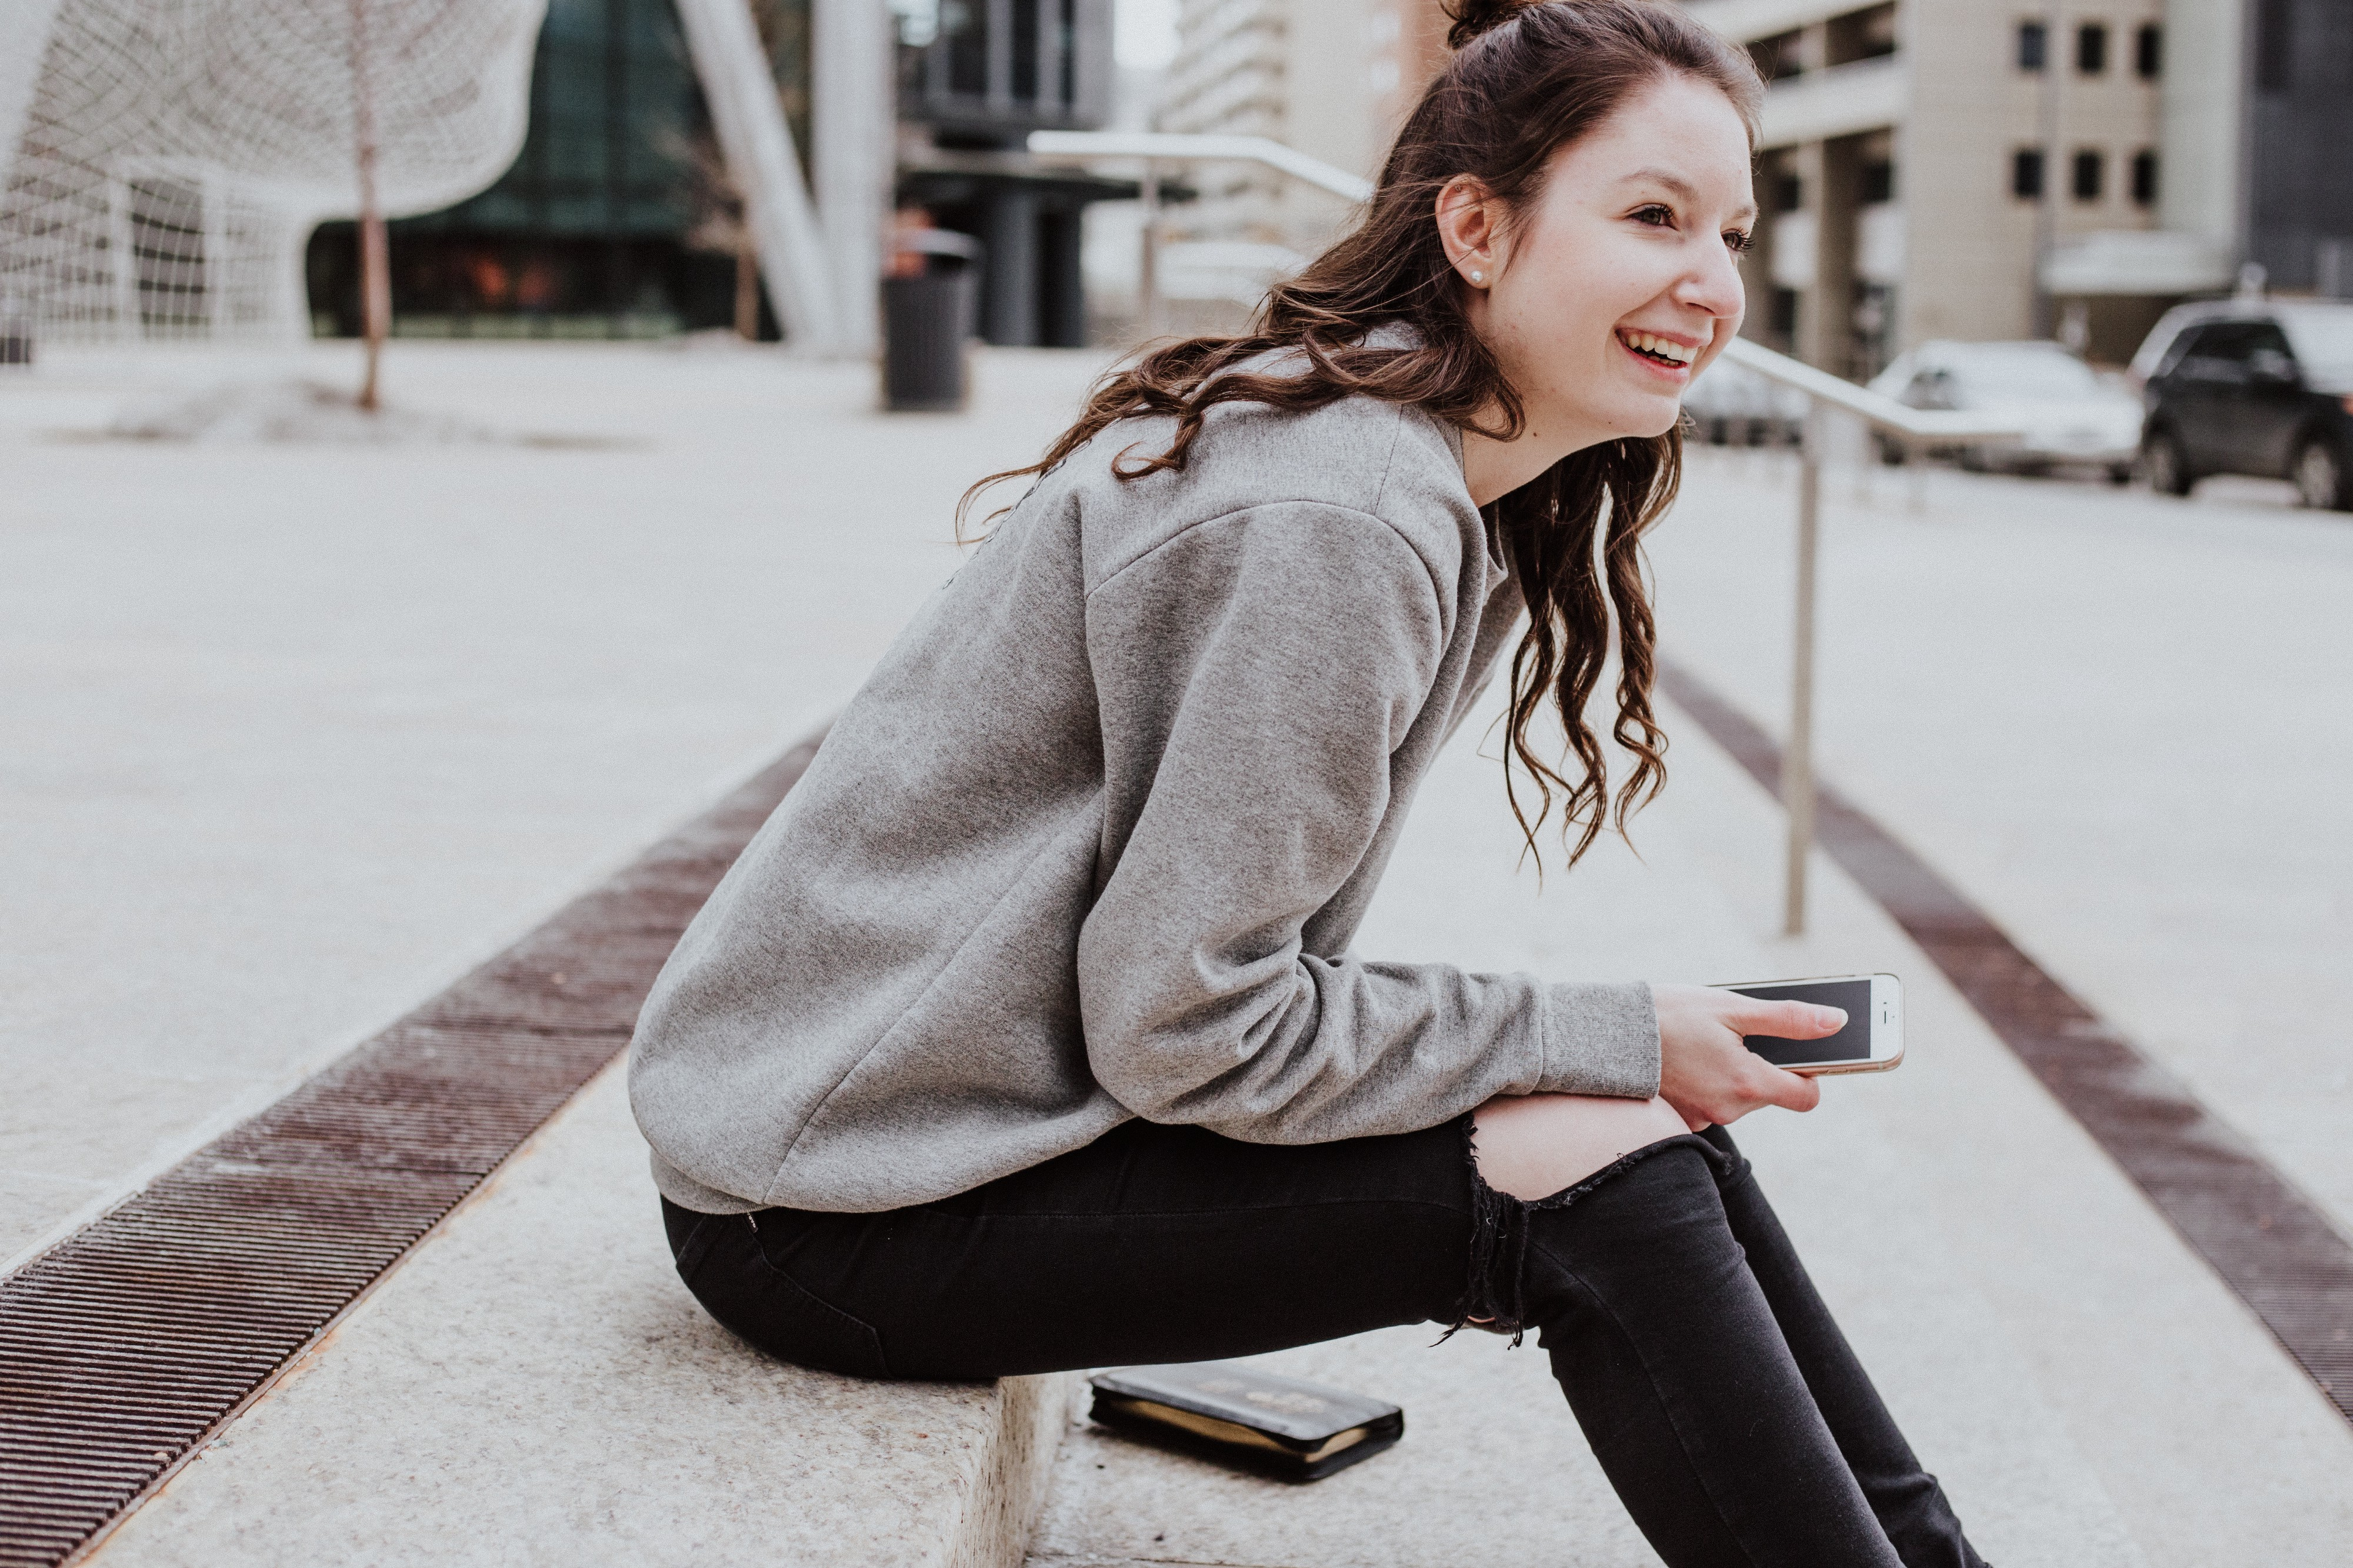 Freelance writer lady in gray sweatshirt and black jeans smiling as she sits on steps outside with a phone in her hand.